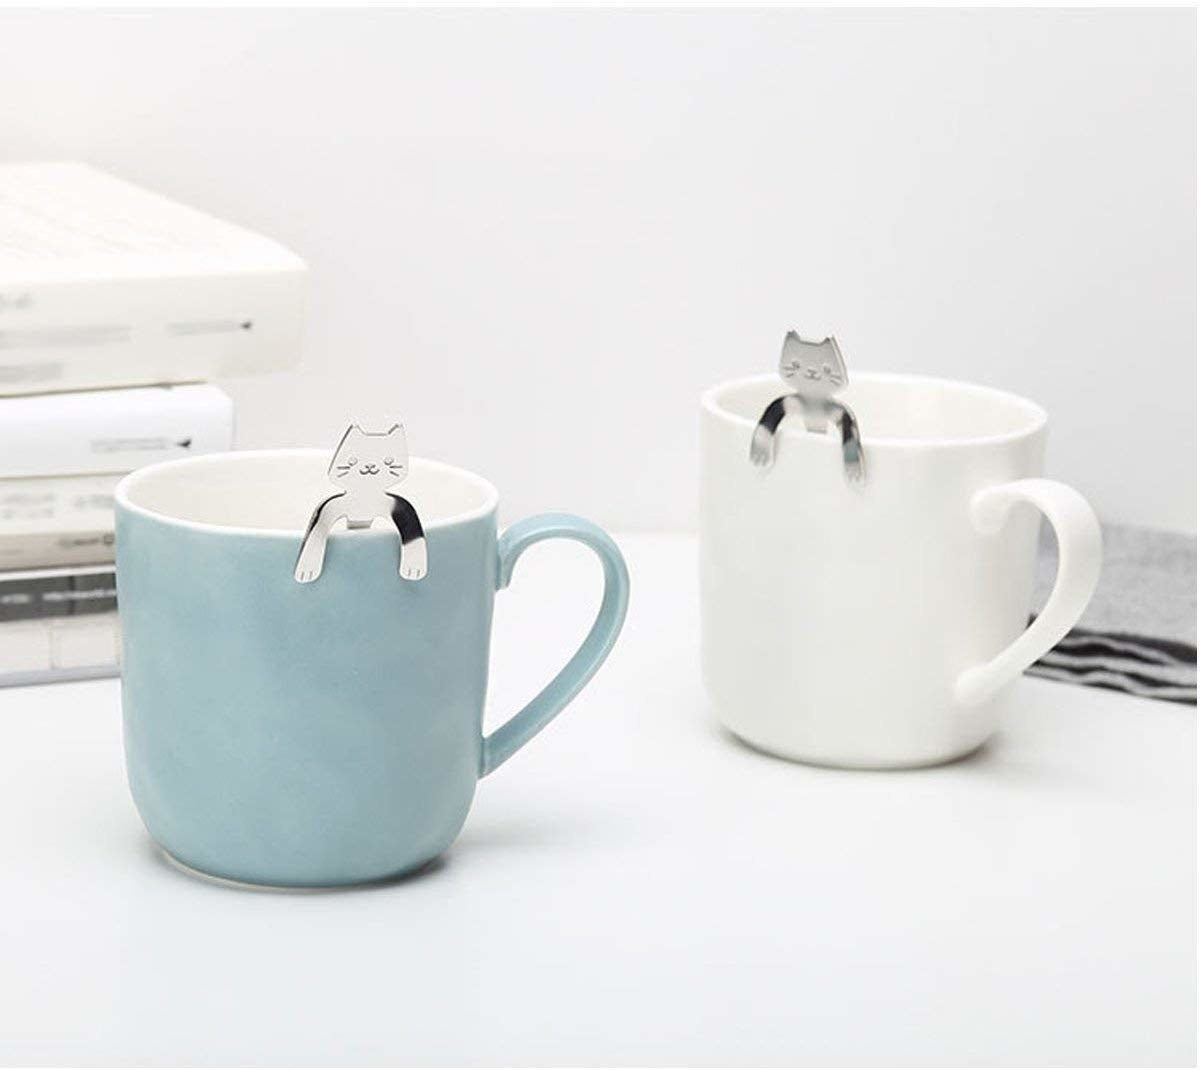 Silver cat spoons hanging over the edge of a cup